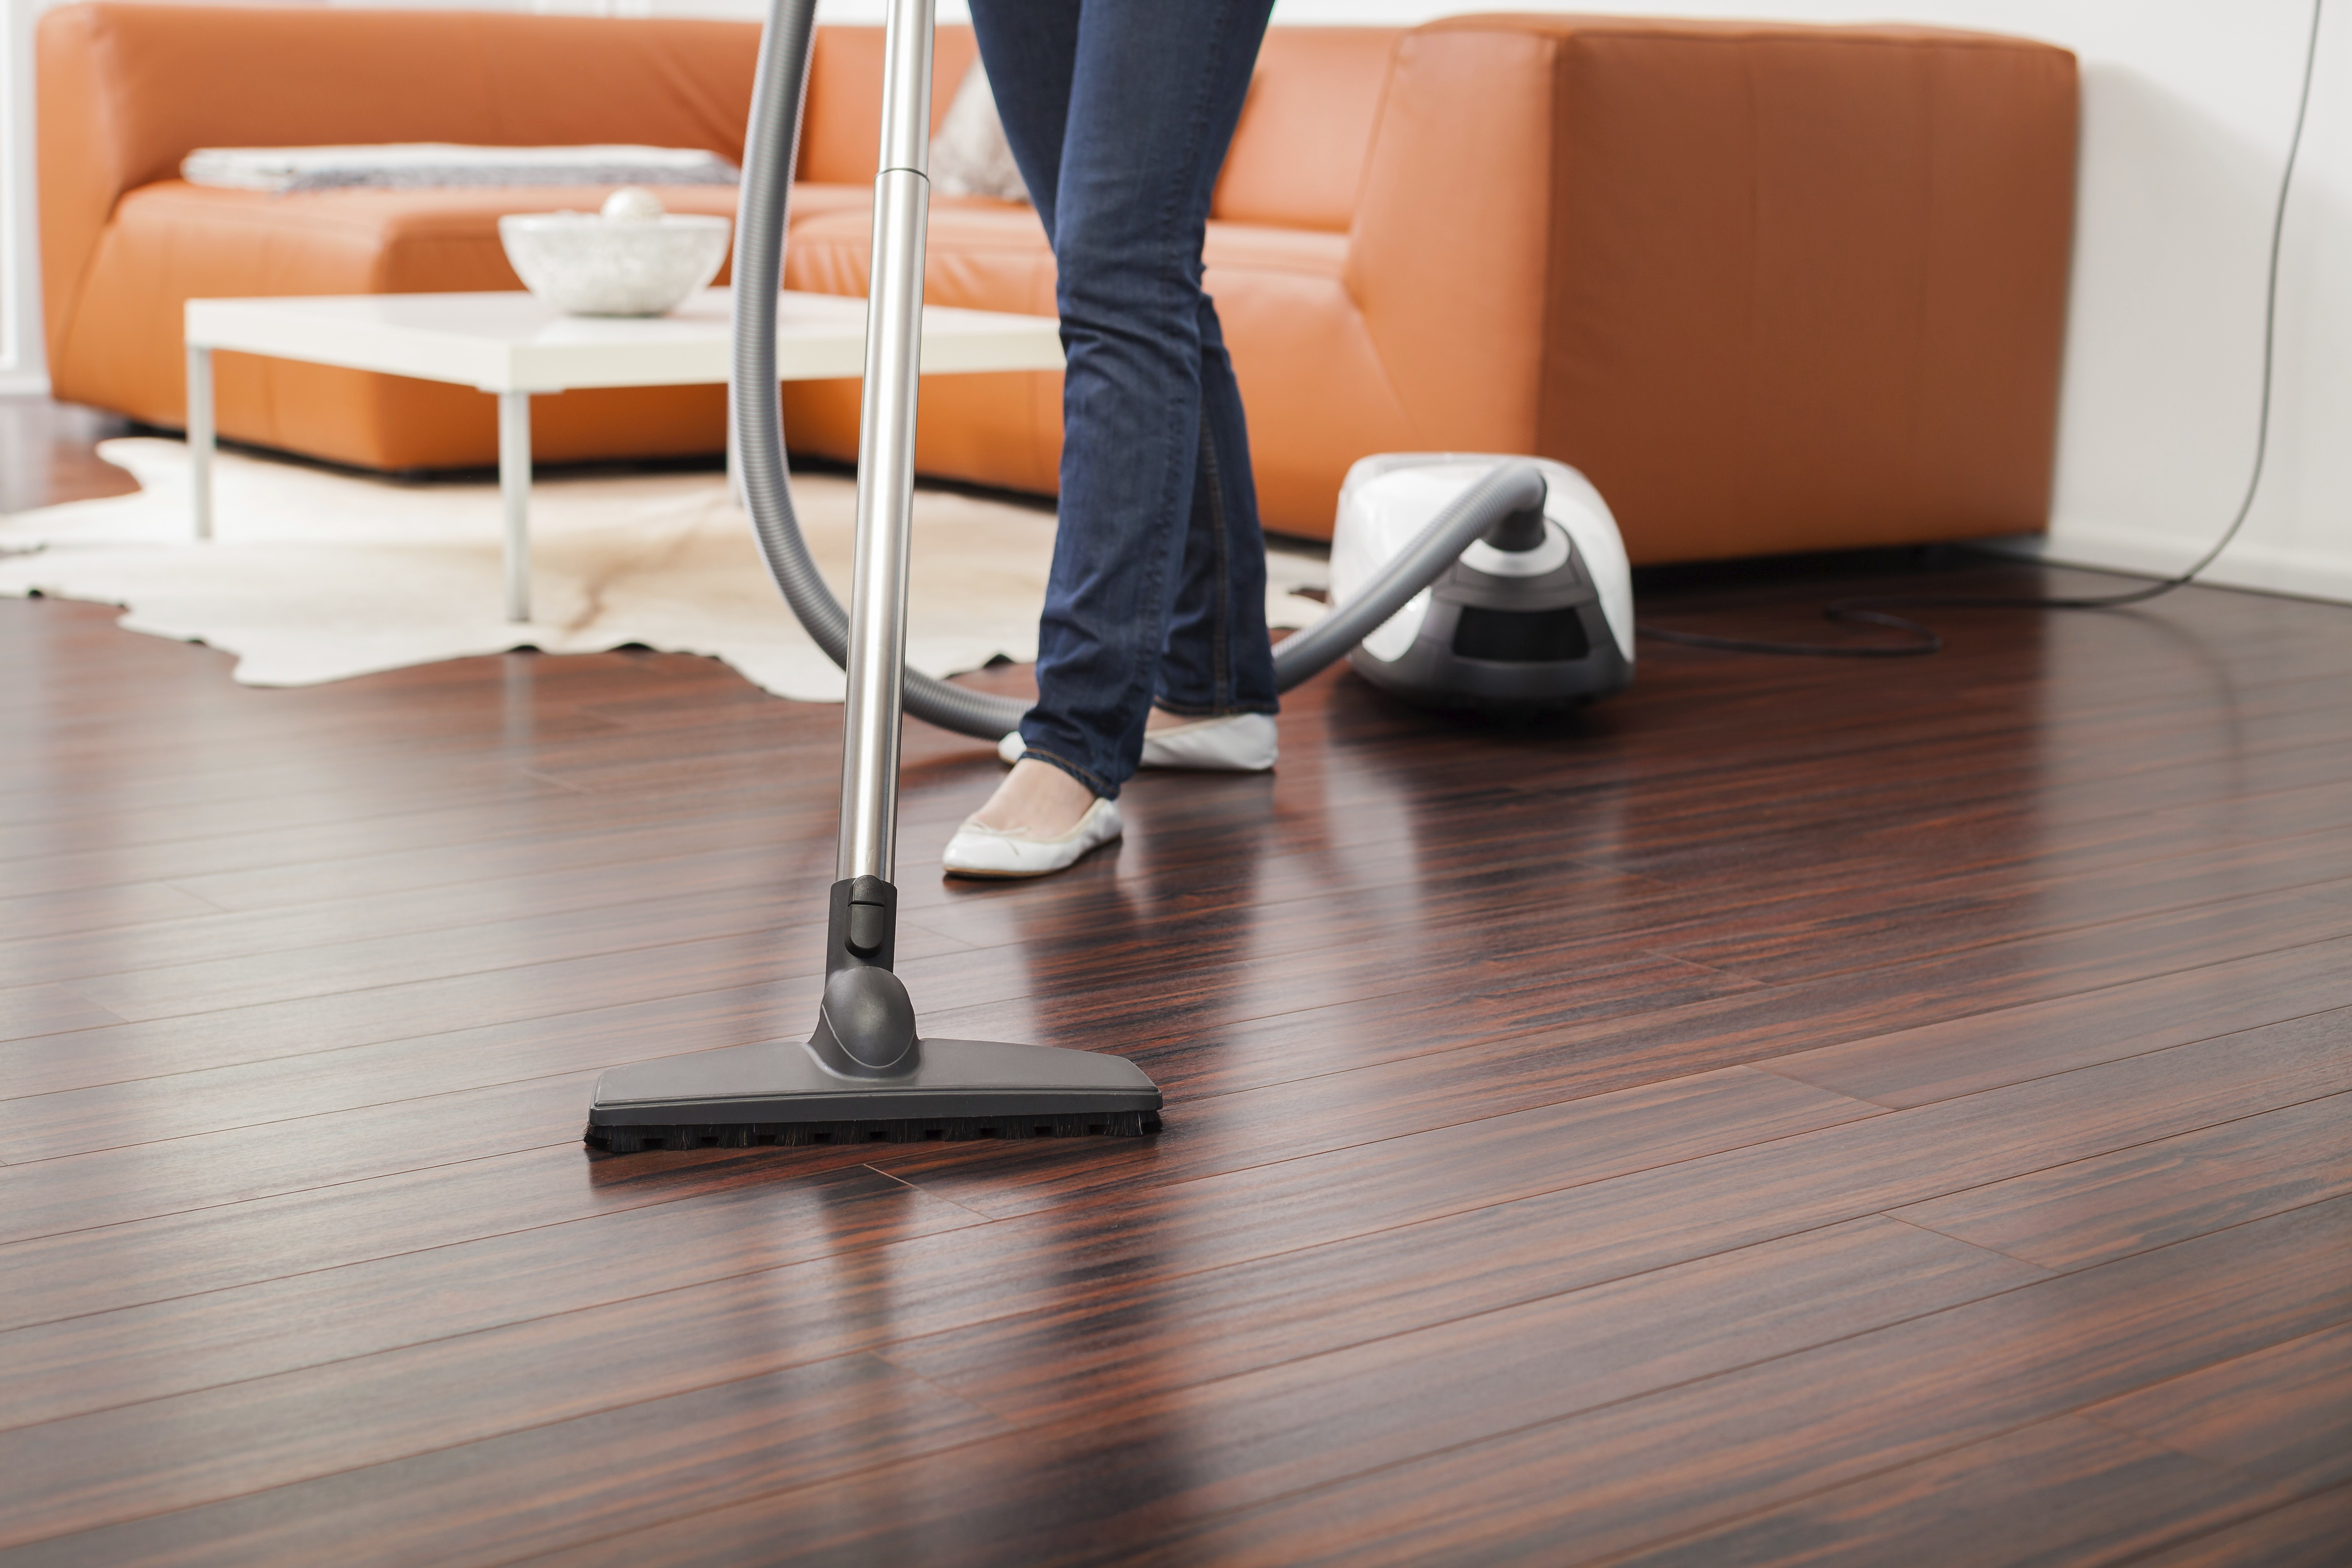 27 Lovely Can You Clean Hardwood Floors with Vinegar 2021 free download can you clean hardwood floors with vinegar of cleaning hardwood floors with vinegar how to clean your hardwood with regard to cleaning hardwood floors with vinegar how to clean your hardwood